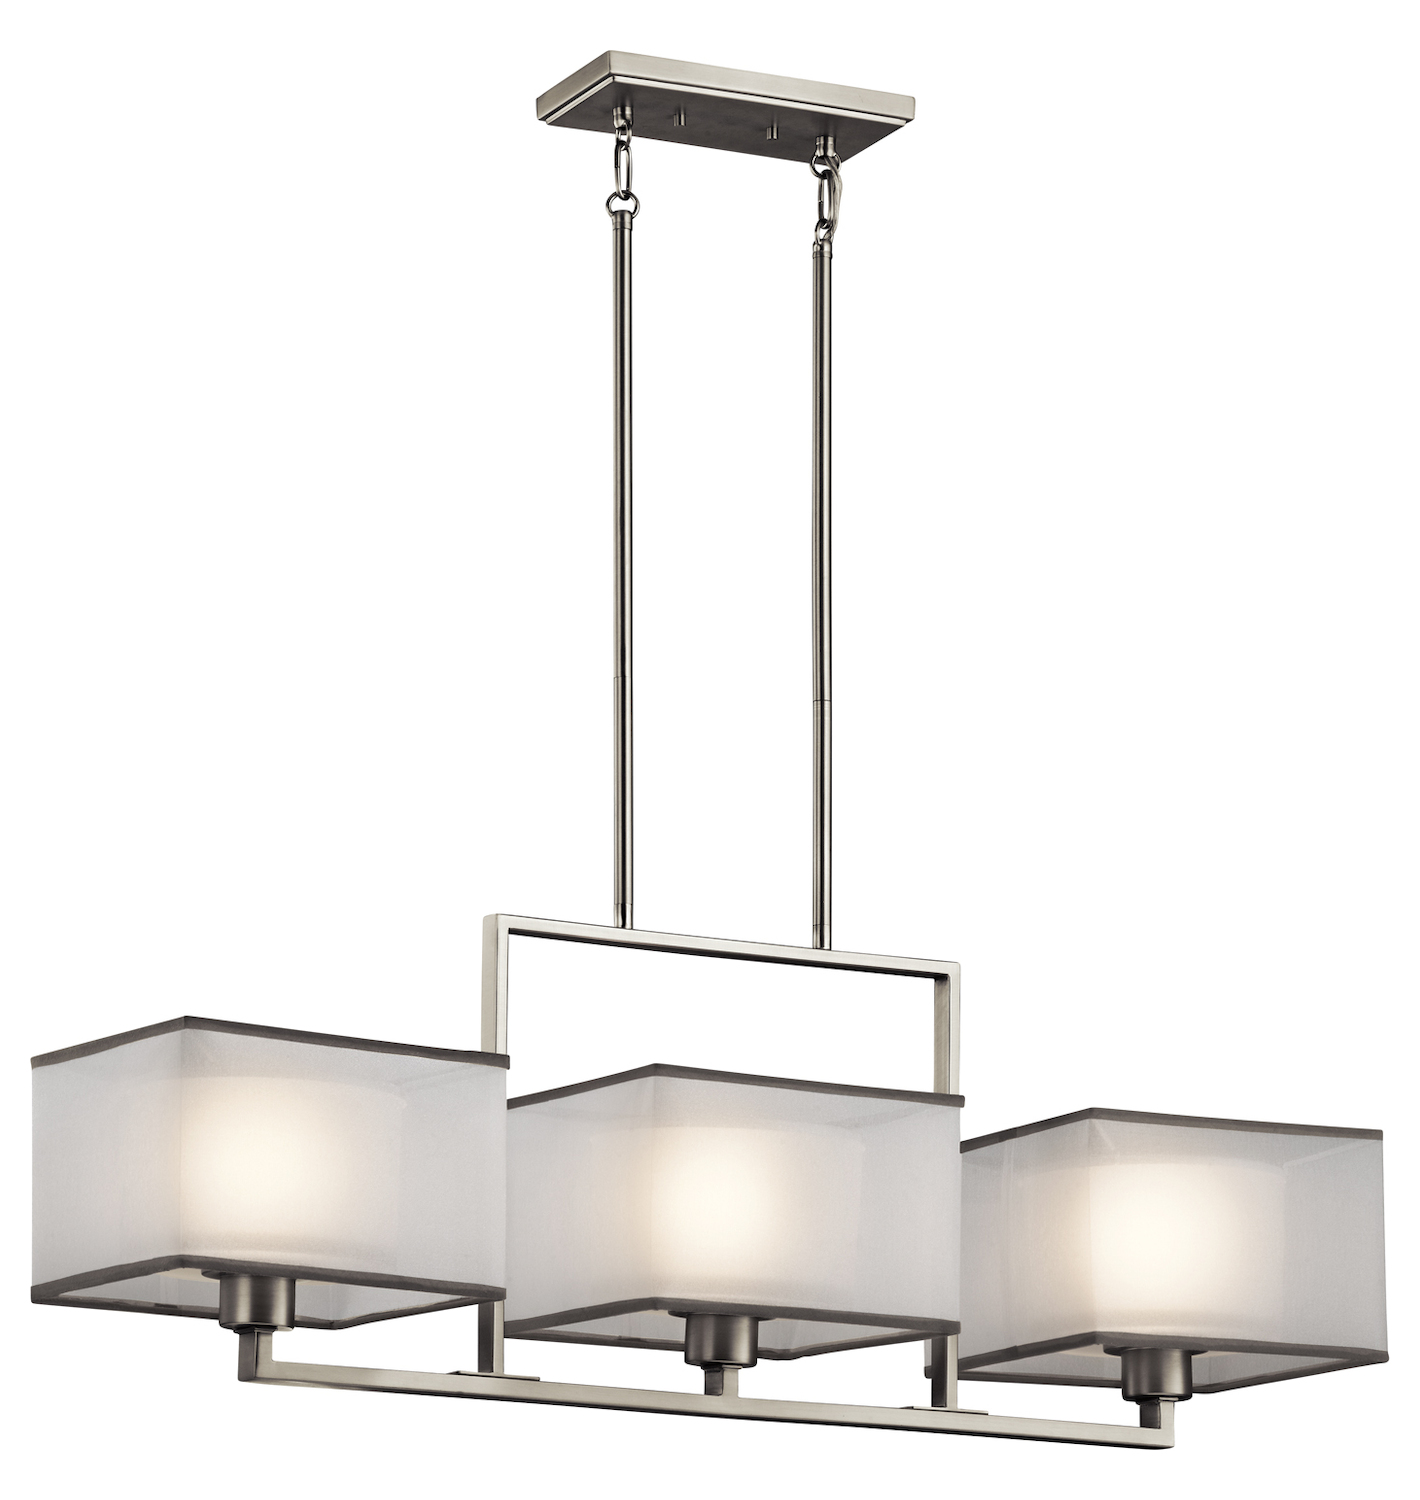 Kichler Kichler 43437Ni Brushed Nickel Kailey 1 Tier Chandelier With 3-Lights